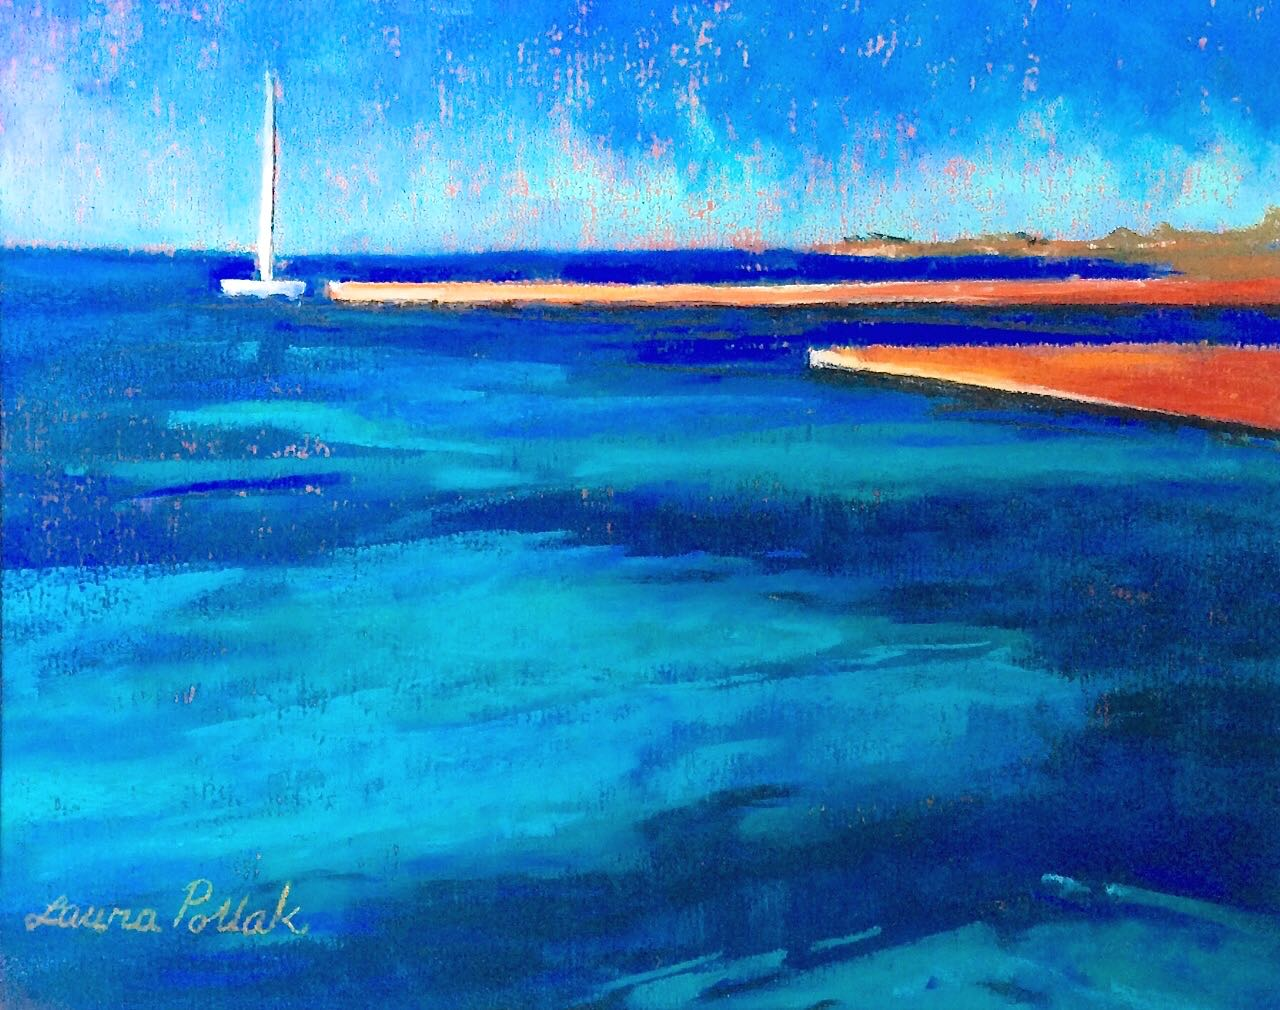 Clear Blue Paintings Laura Pollak- Portfolio2 Gallery